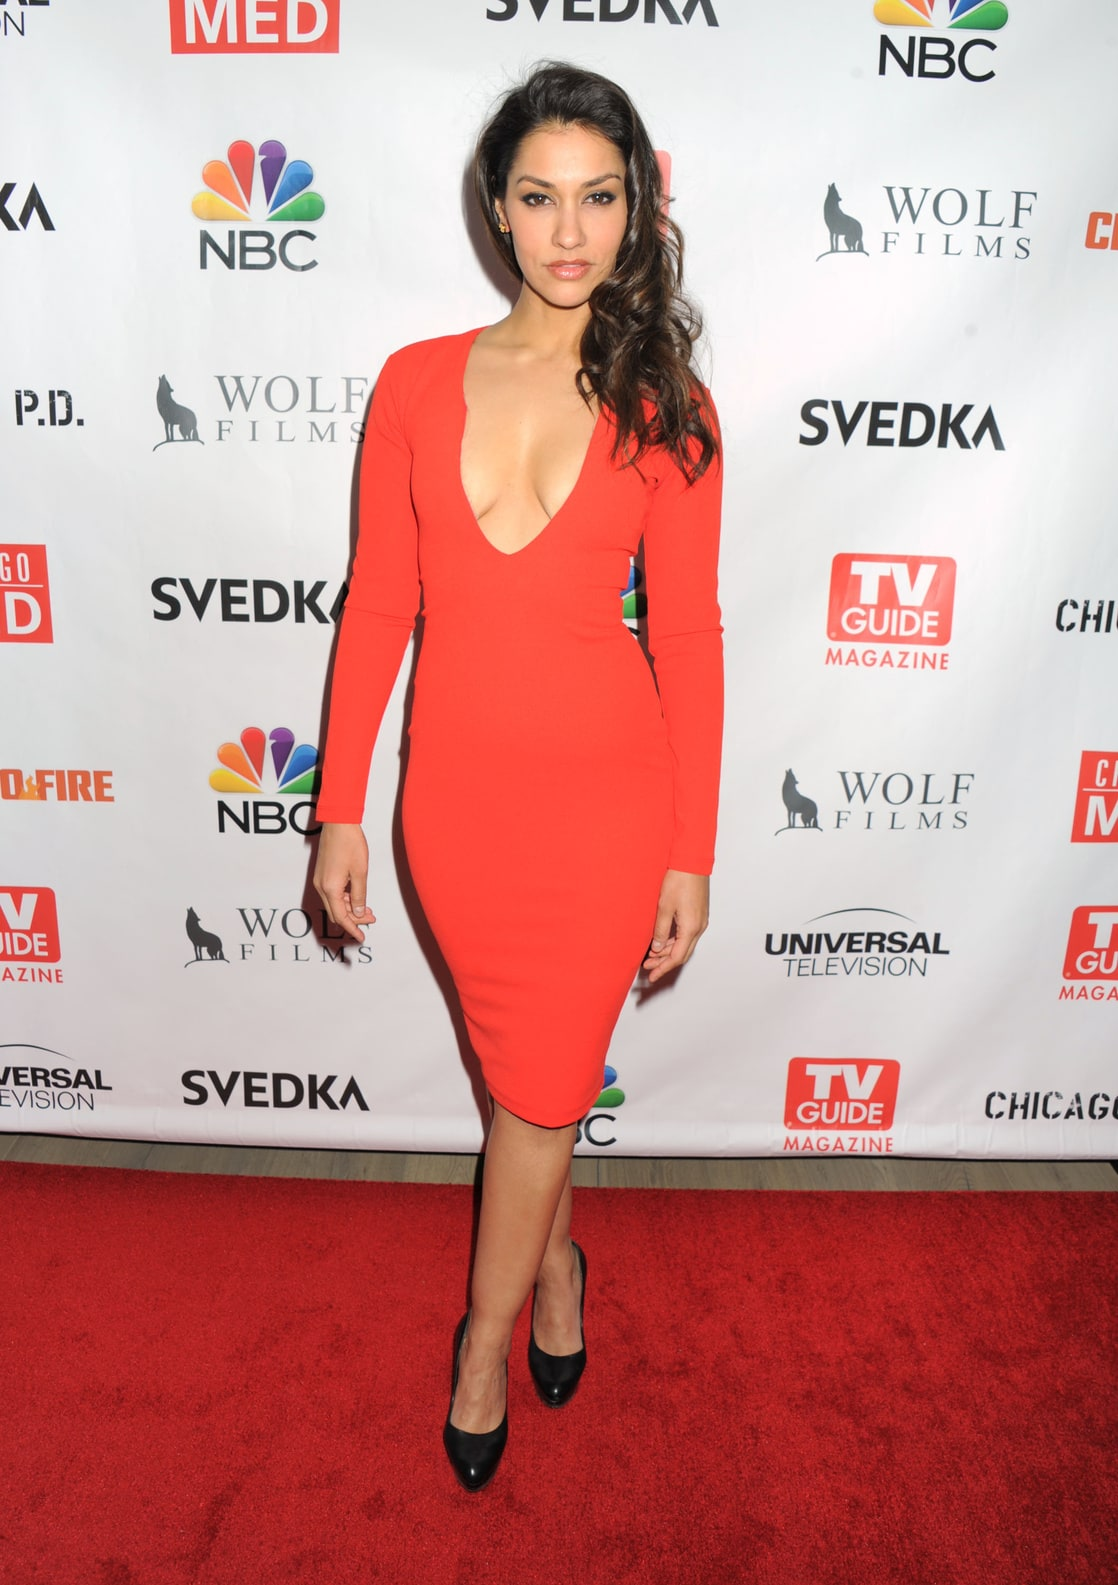 janina gavankar - photo #44